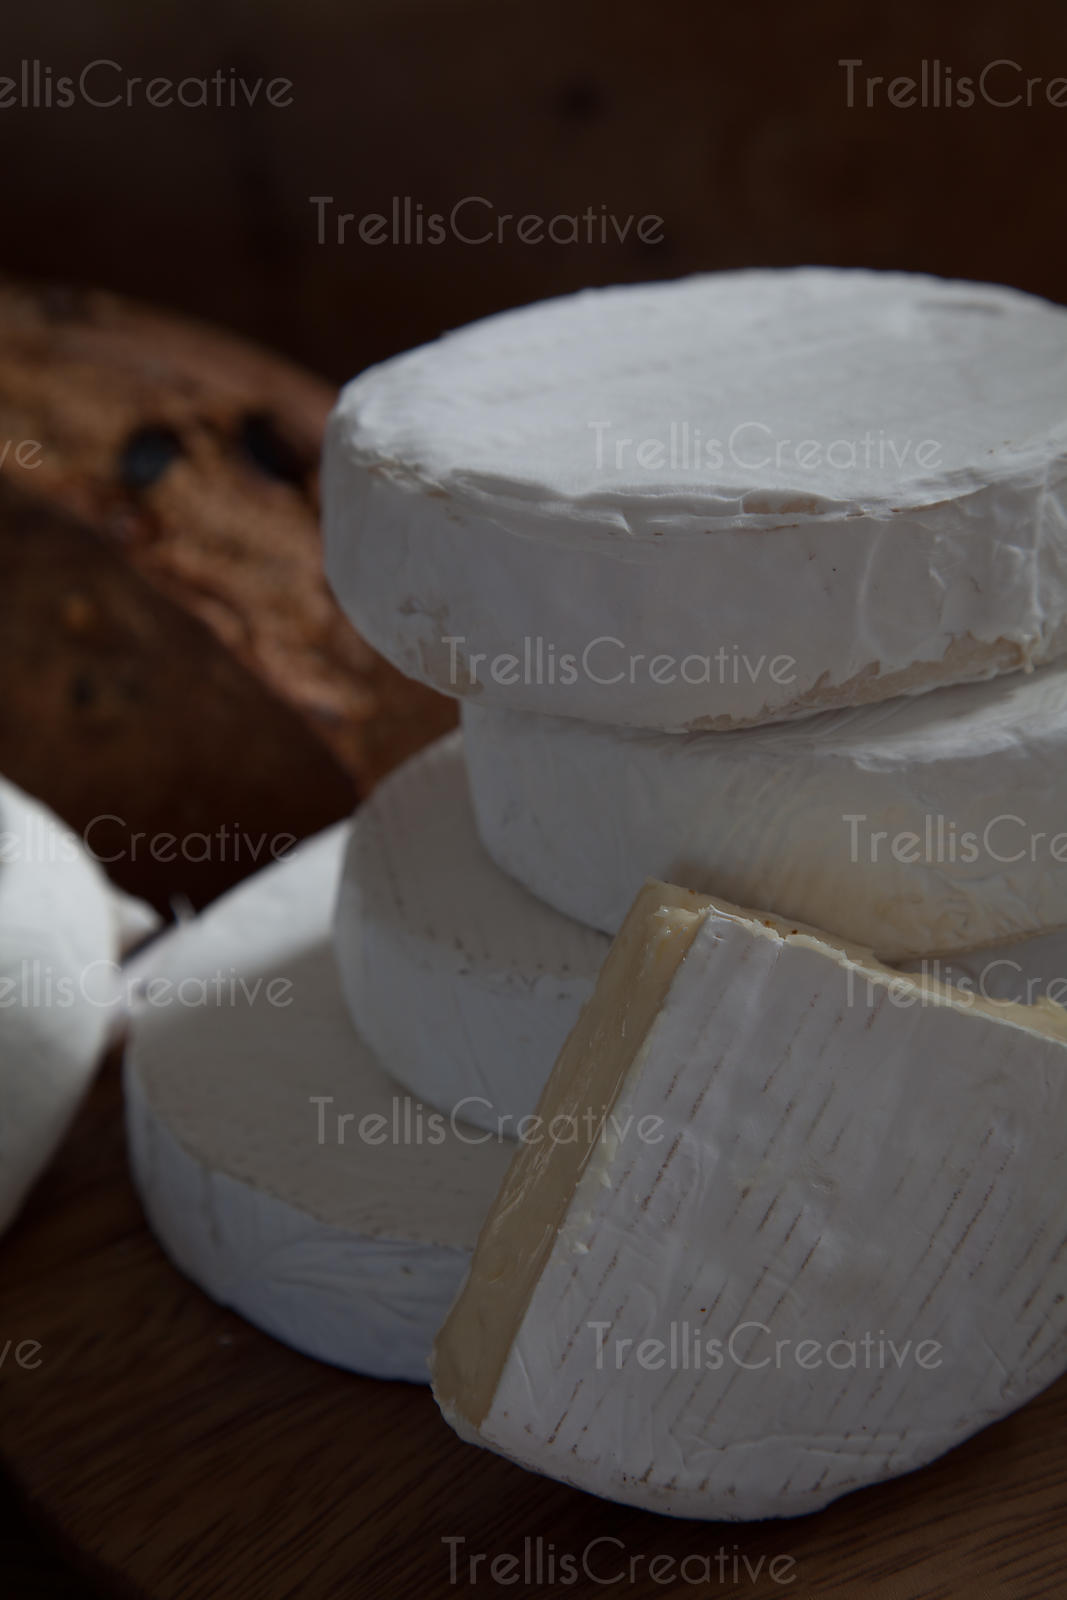 Stacks of camembert brie wheels with a cheese wedge, close-up